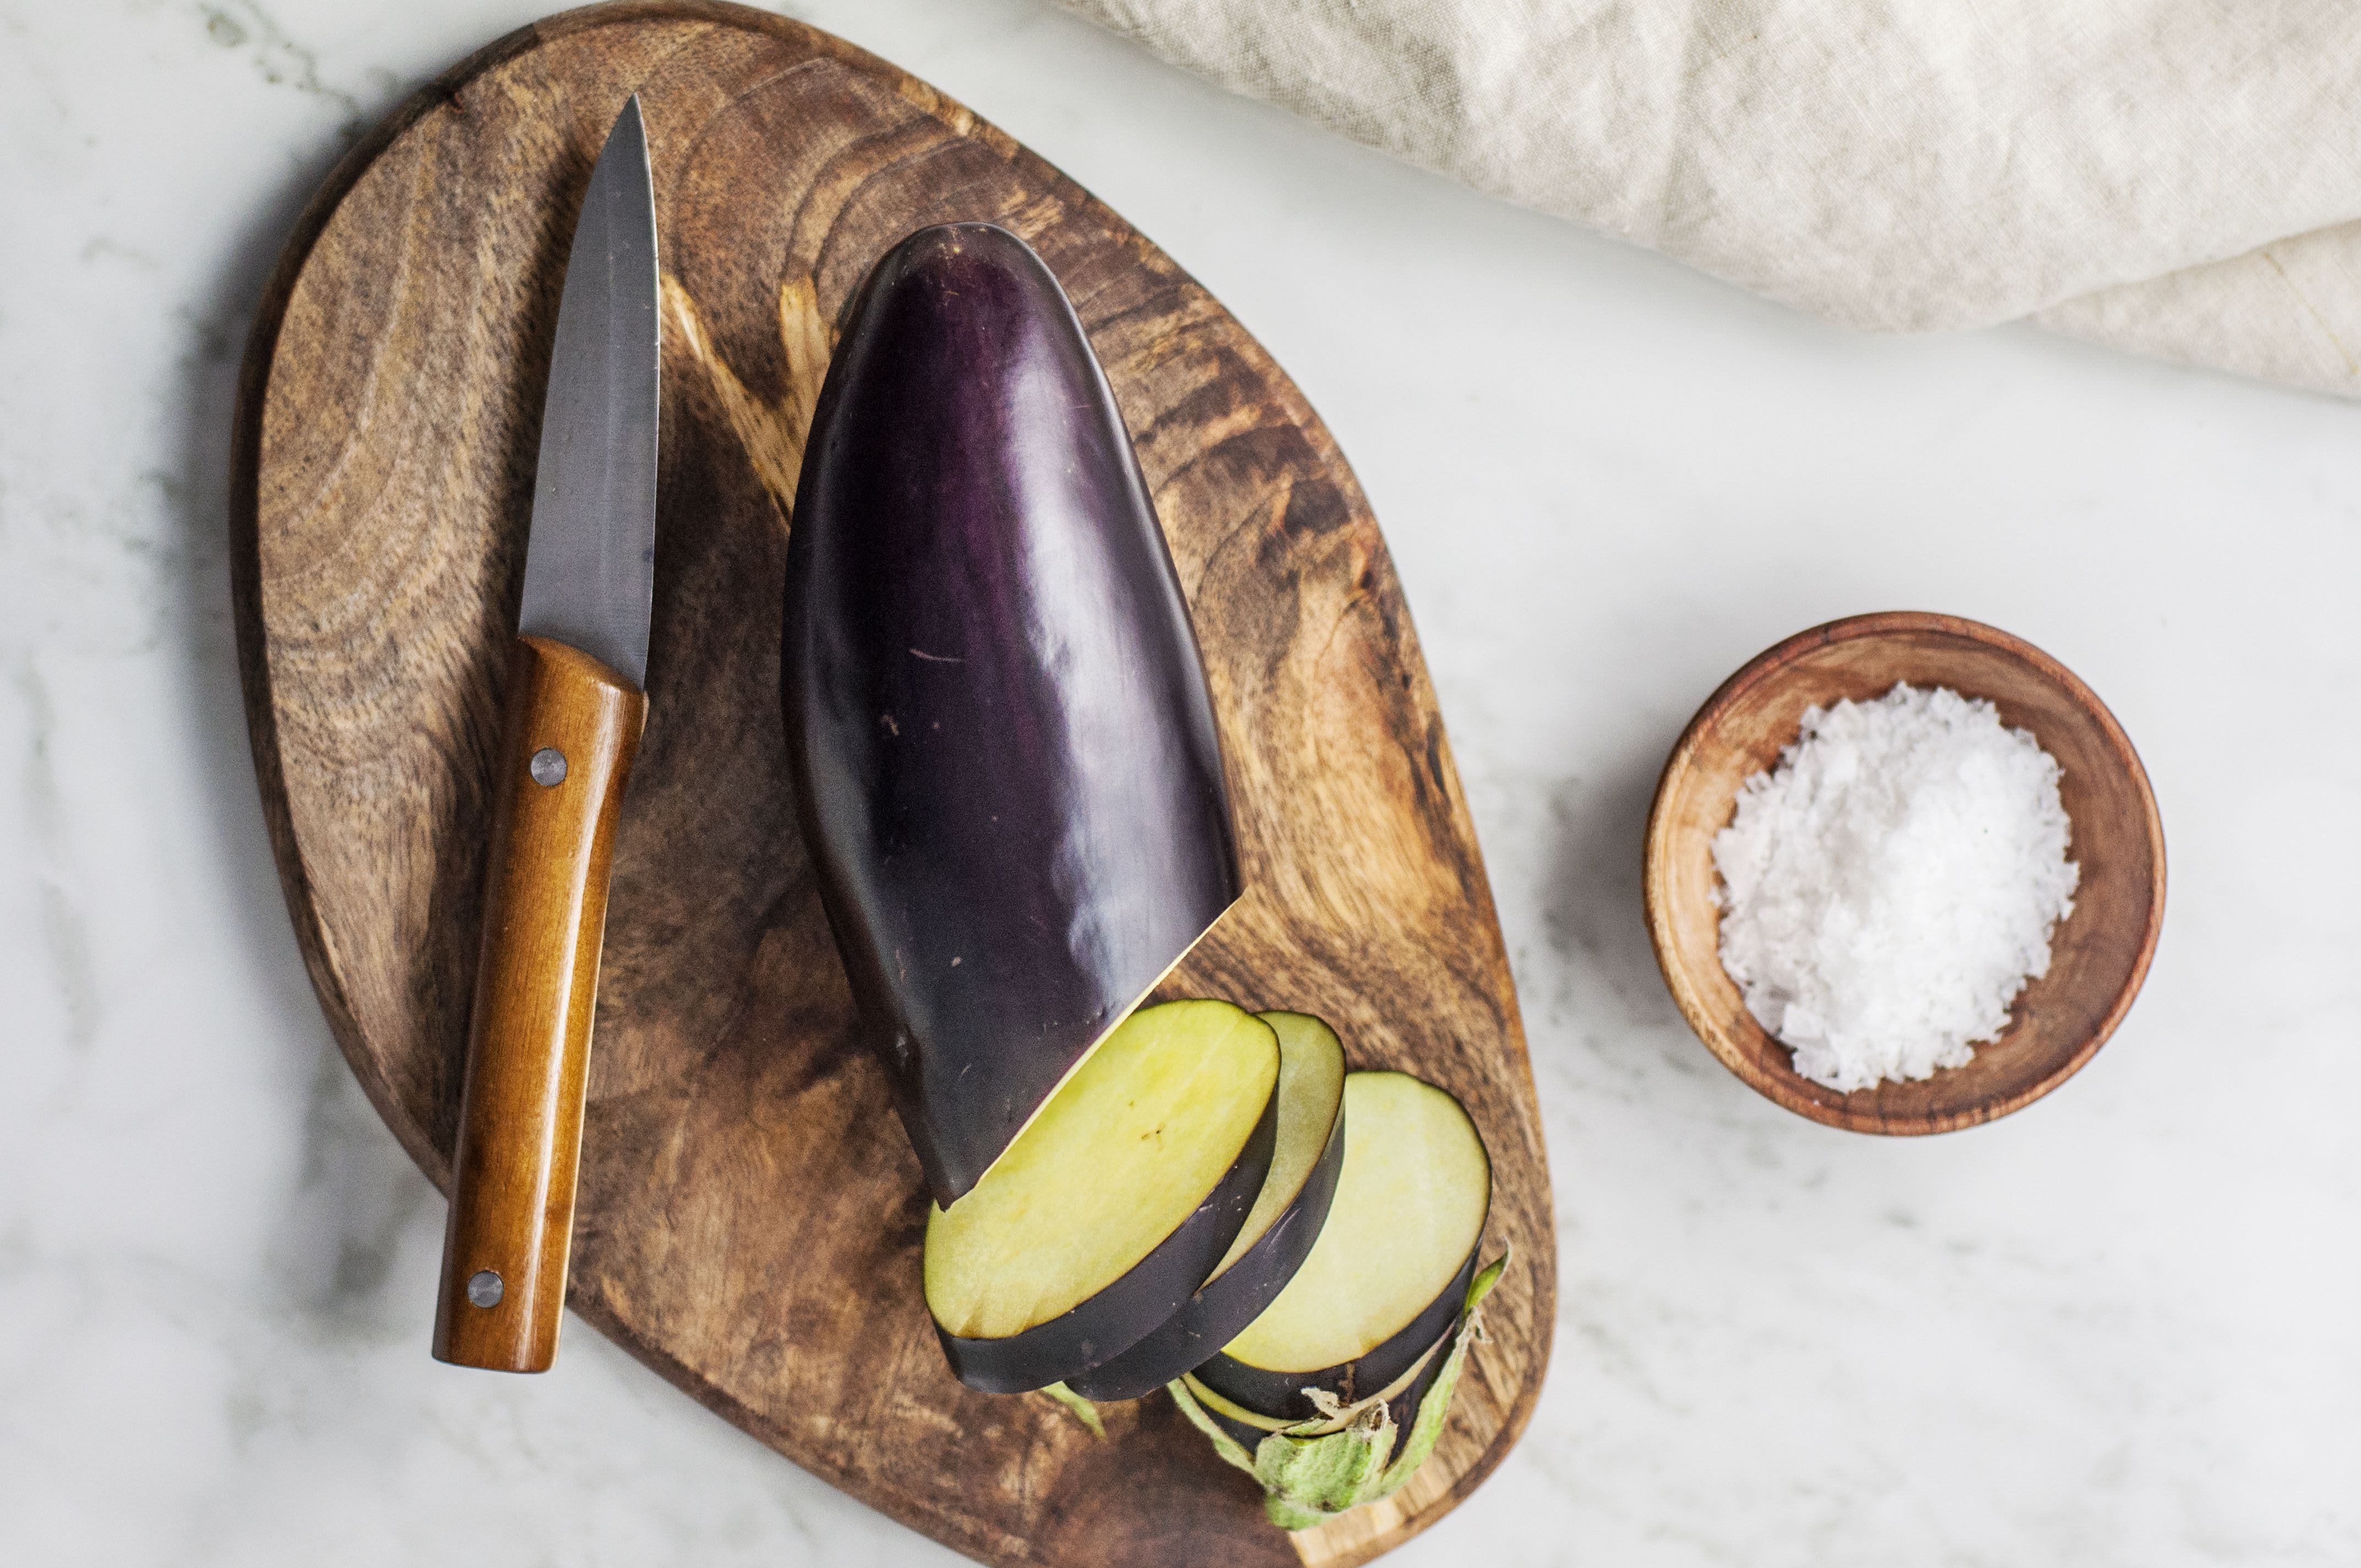 Ingredients for making baked eggplant